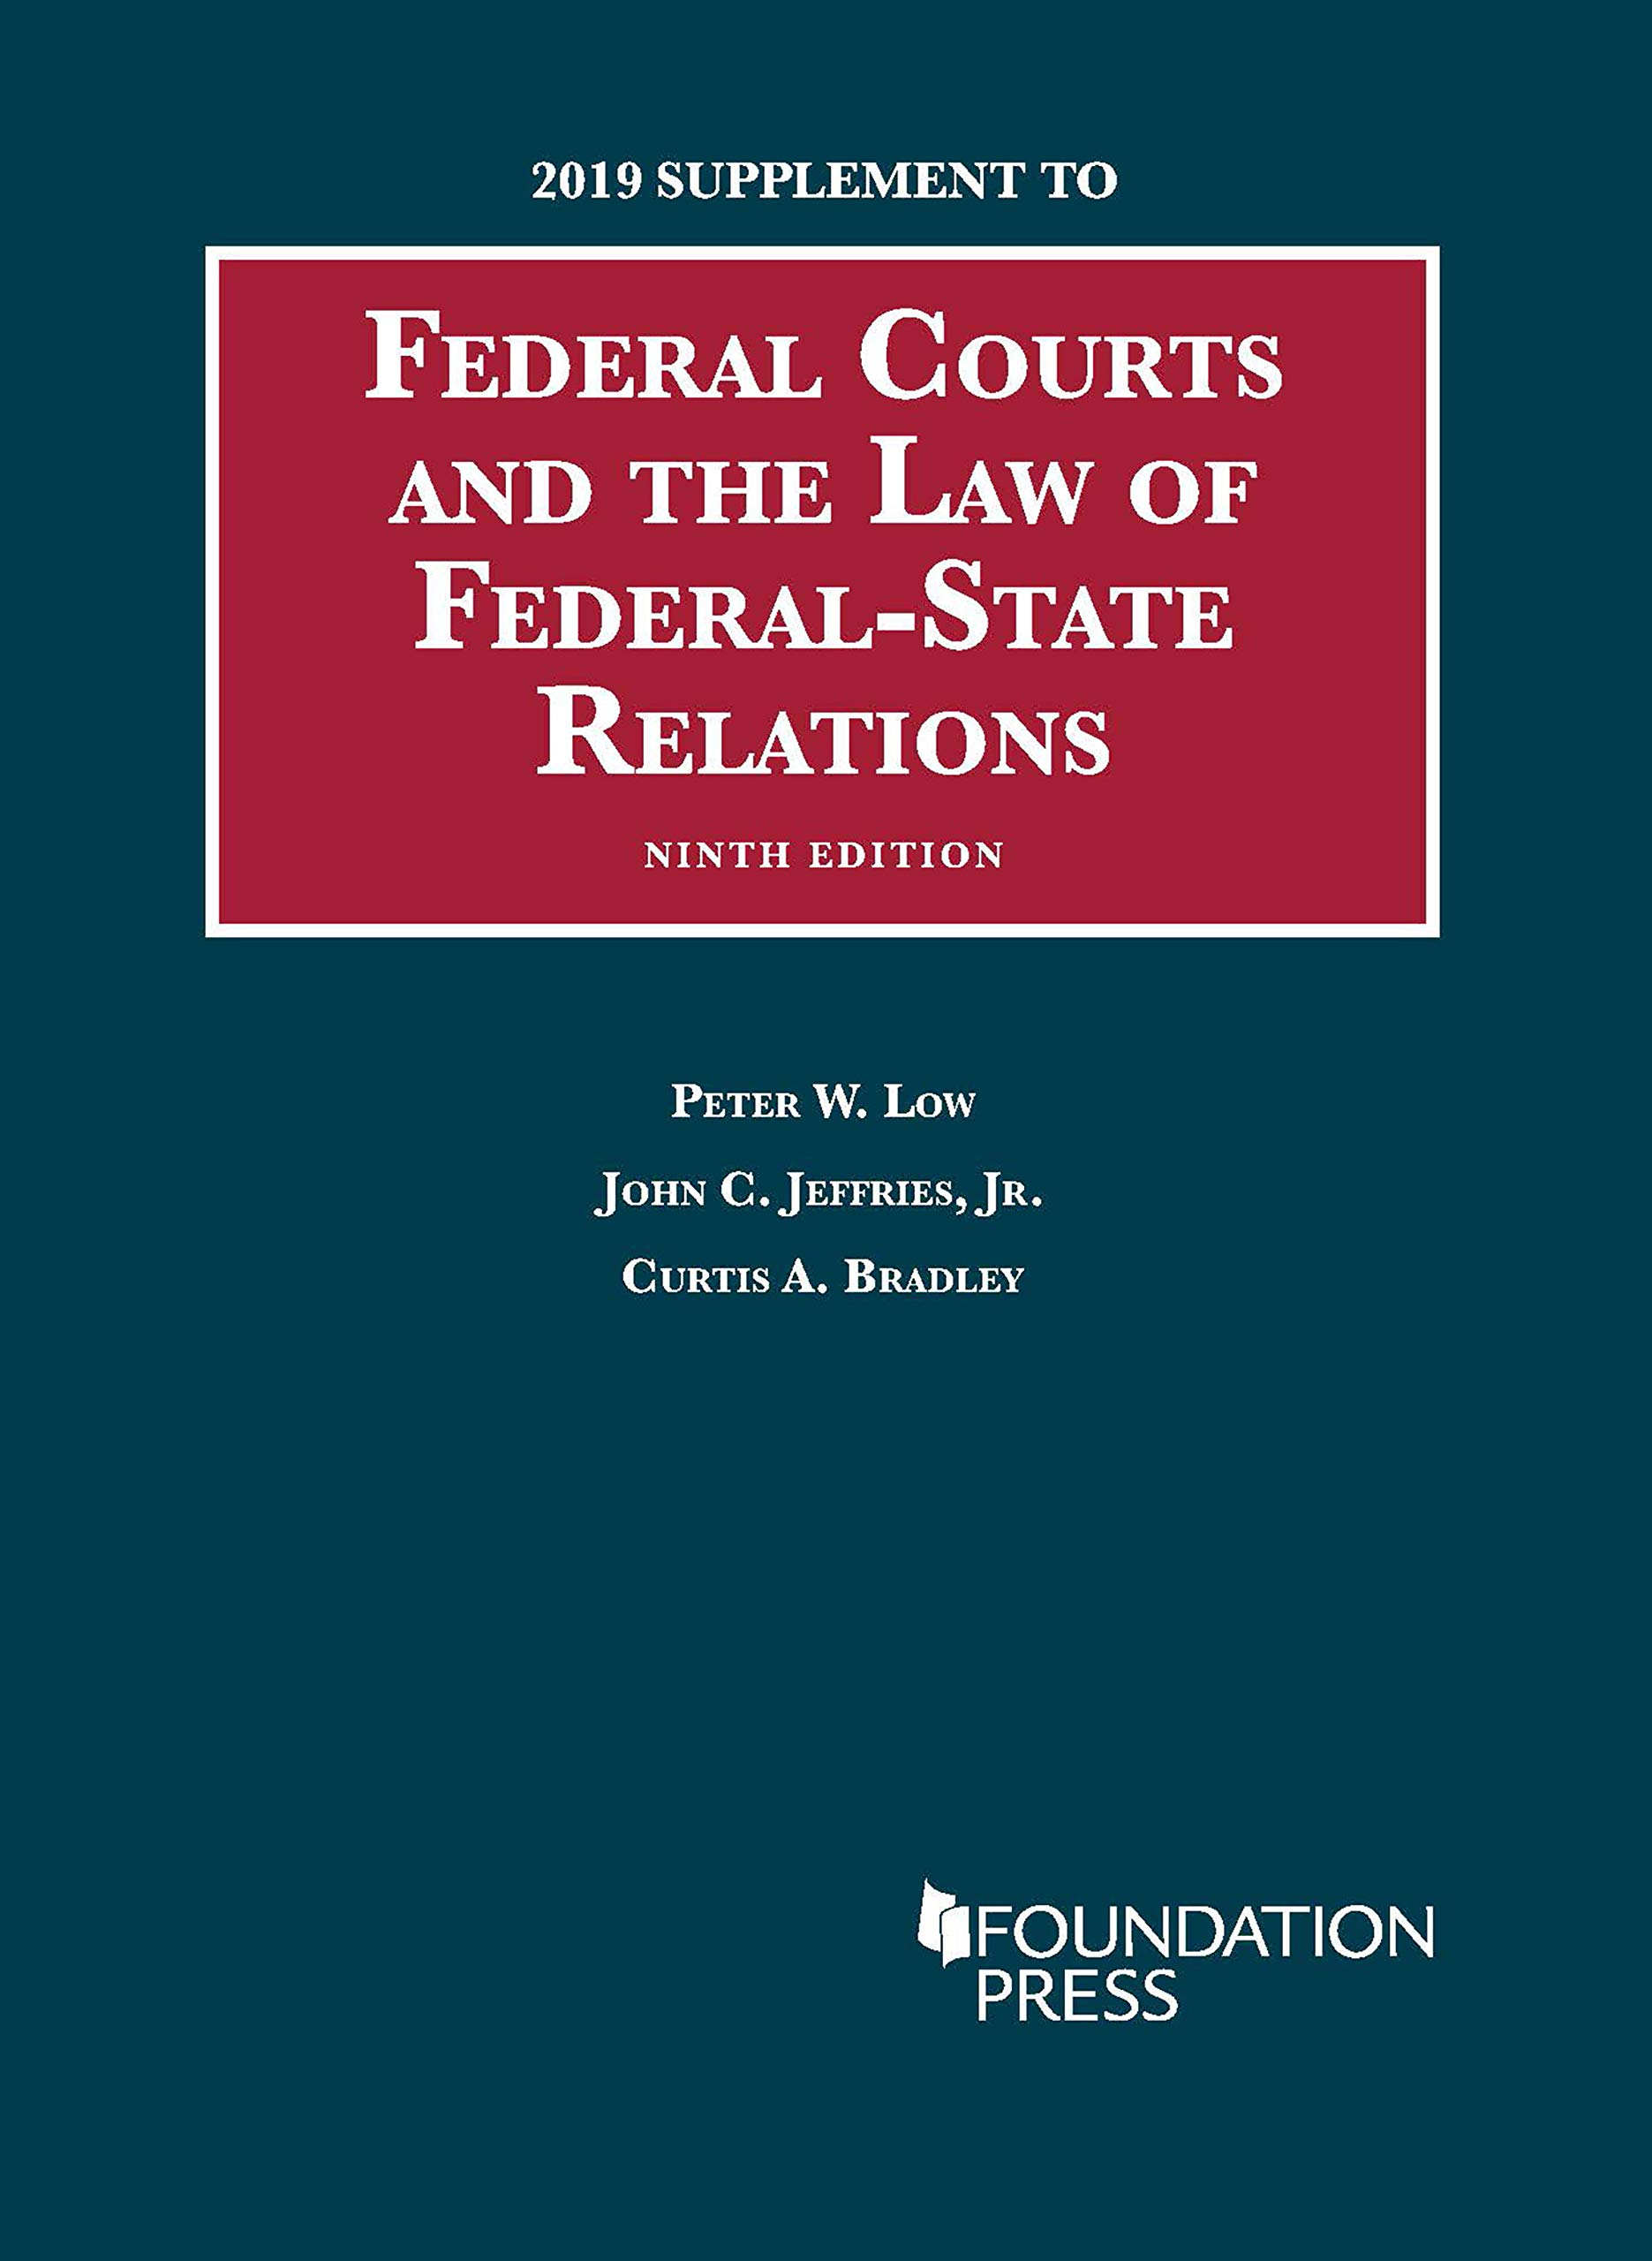 Federal Courts and the Law of Federal-State Relations, 2019 Supplement (University Casebook Series)